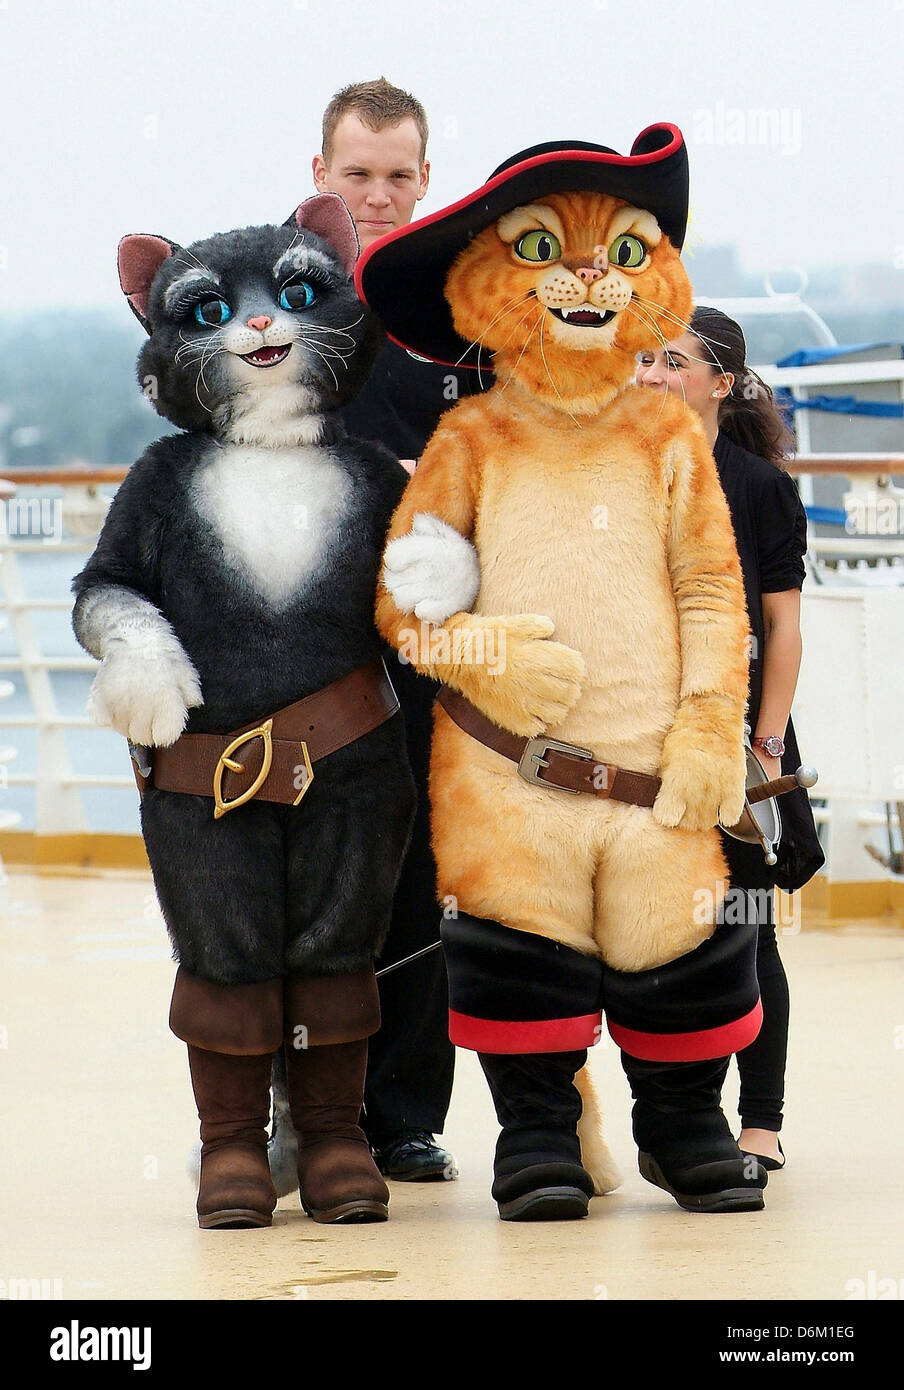 Puss In Boots characters DreamWorks Animation and Royal